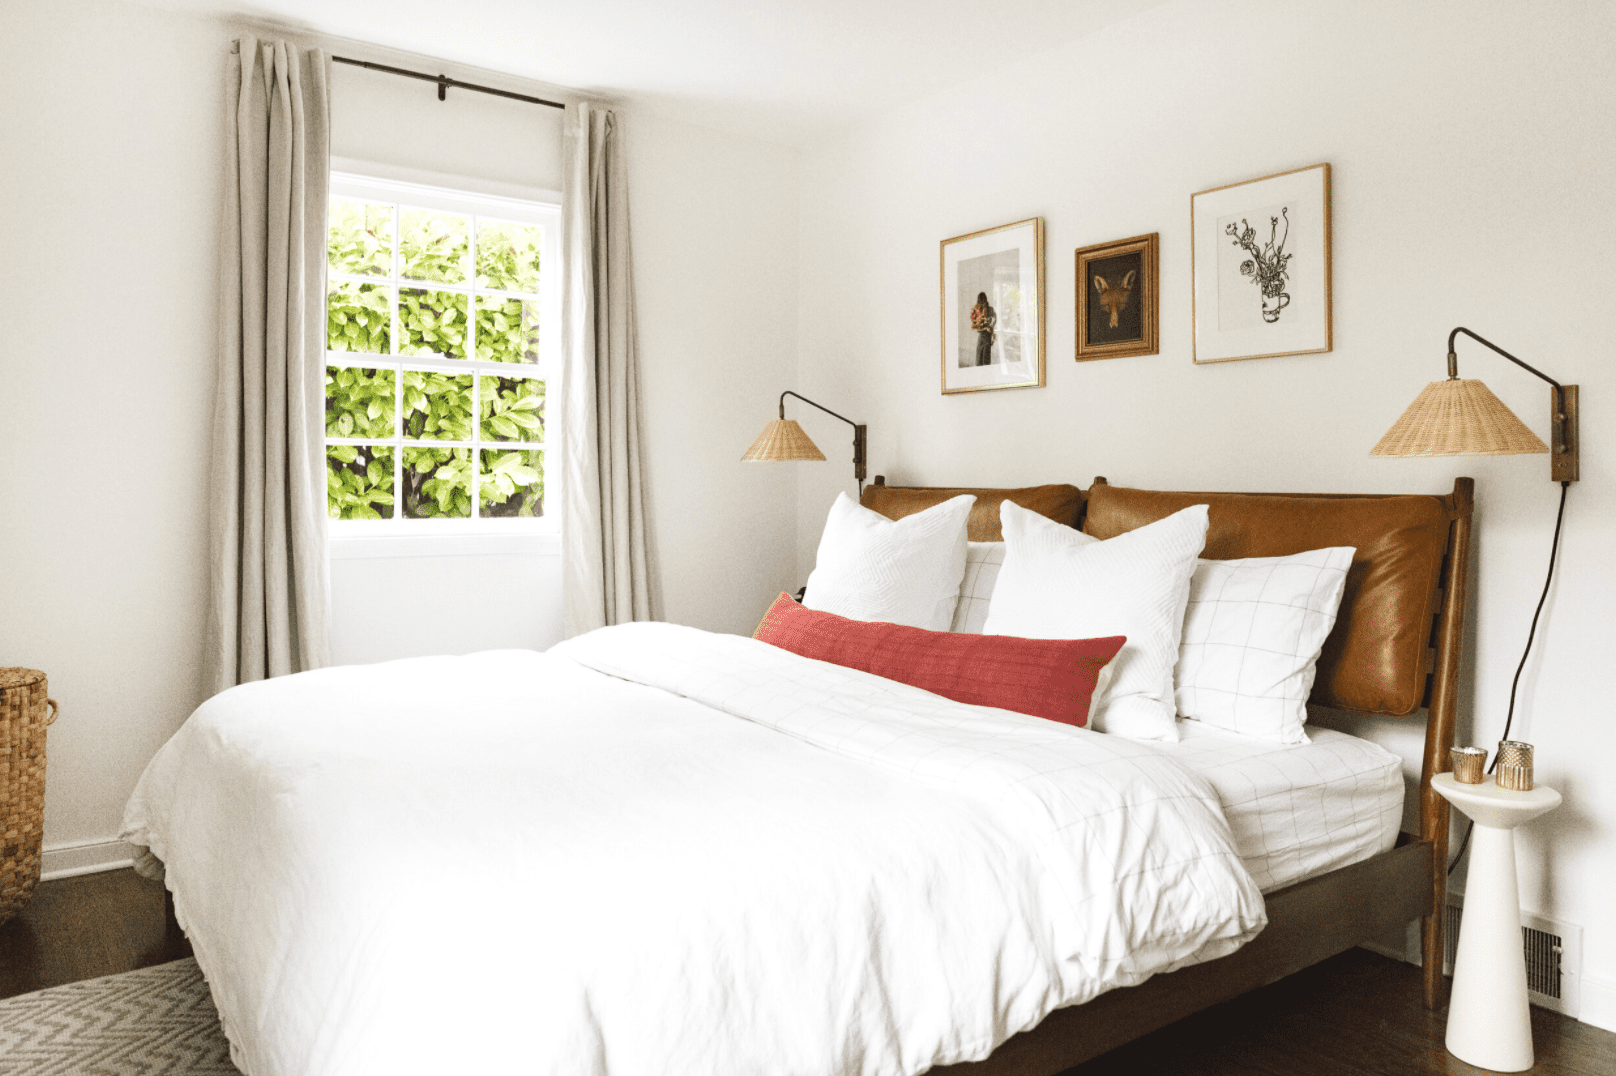 Bedroom with leather headboard and red pillow